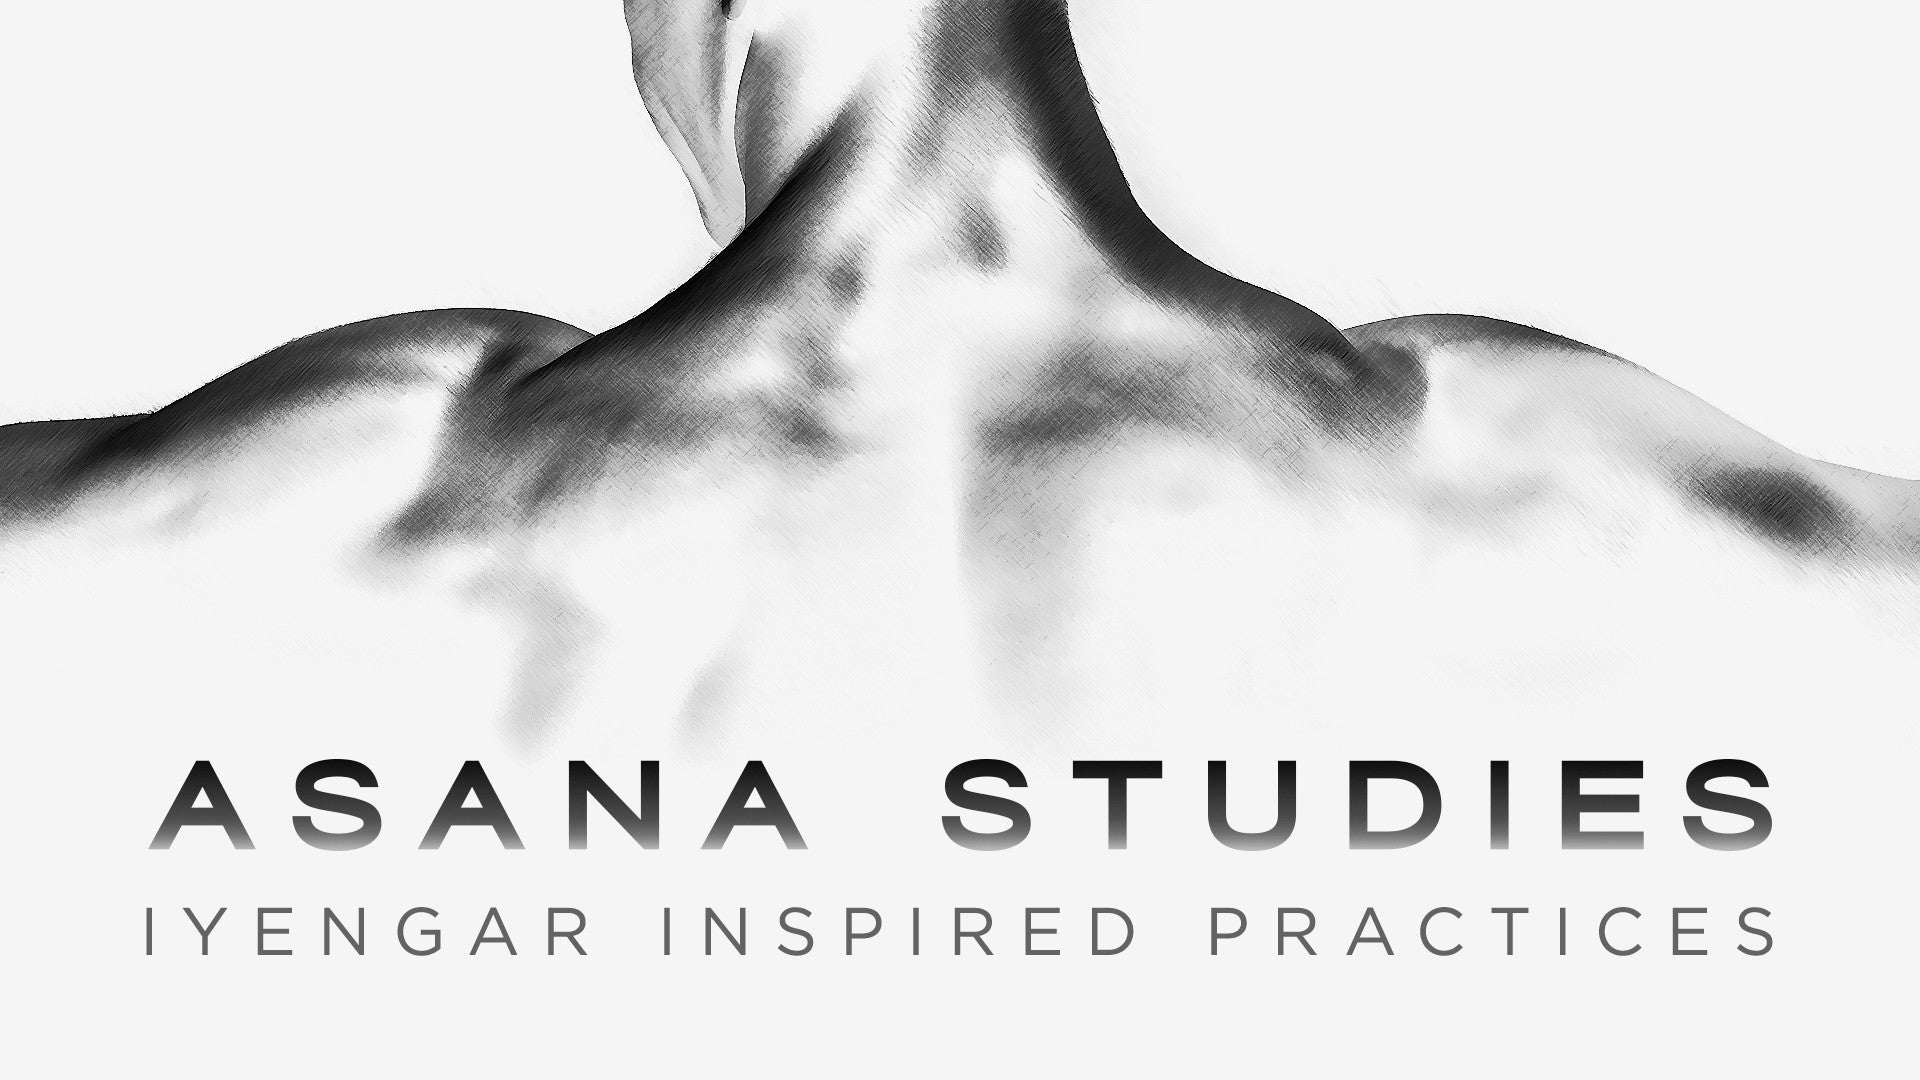 Asana Studies Artwork